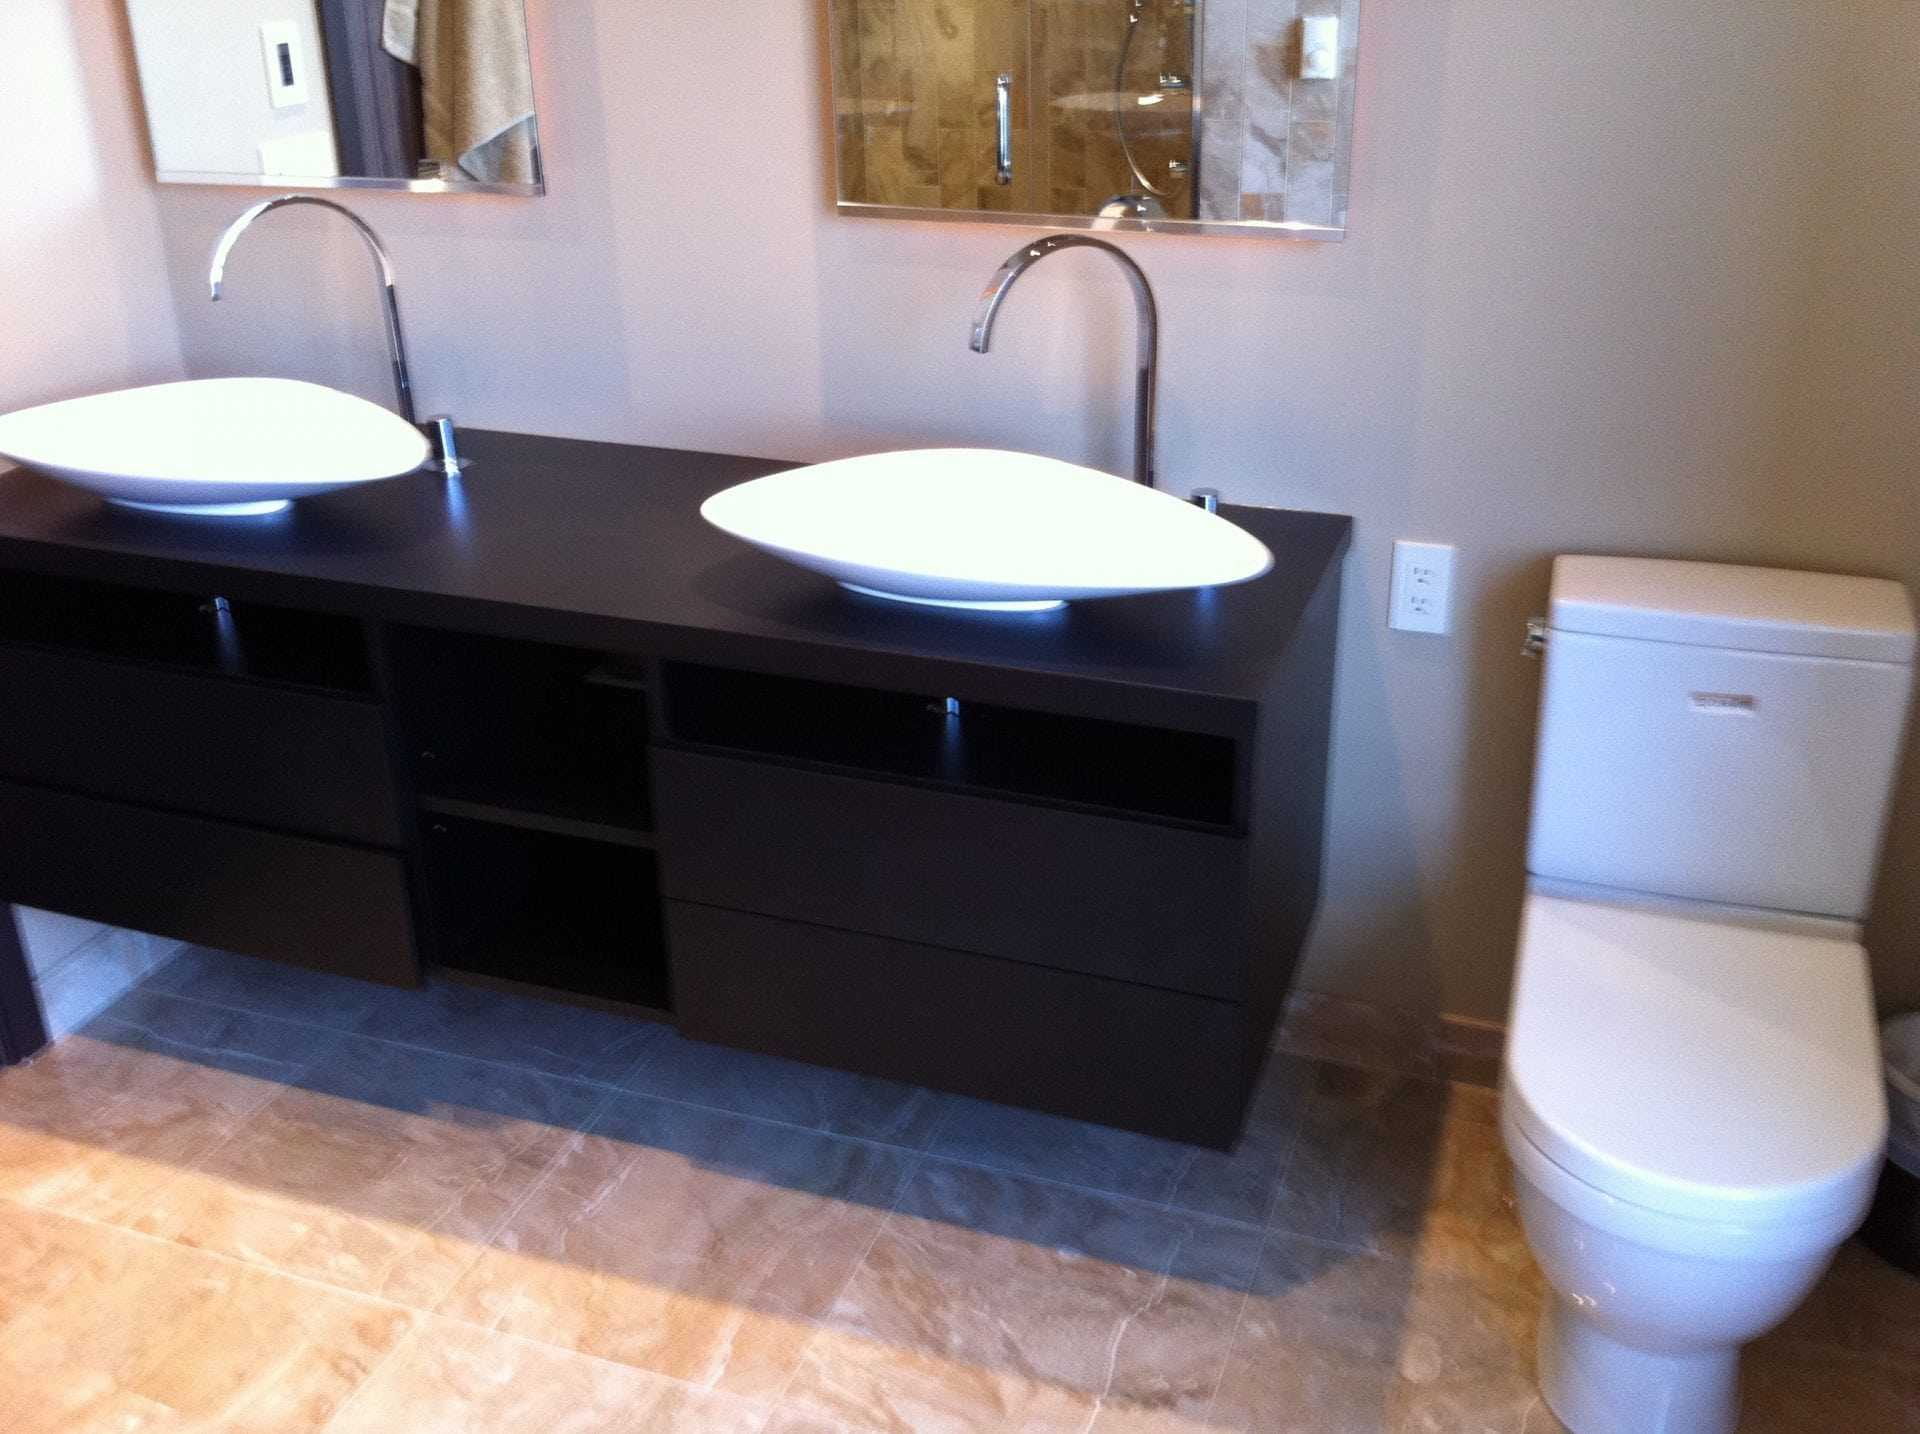 services our brooklyn bathroom queens purewal contractors remodel general hb primary contractor inc